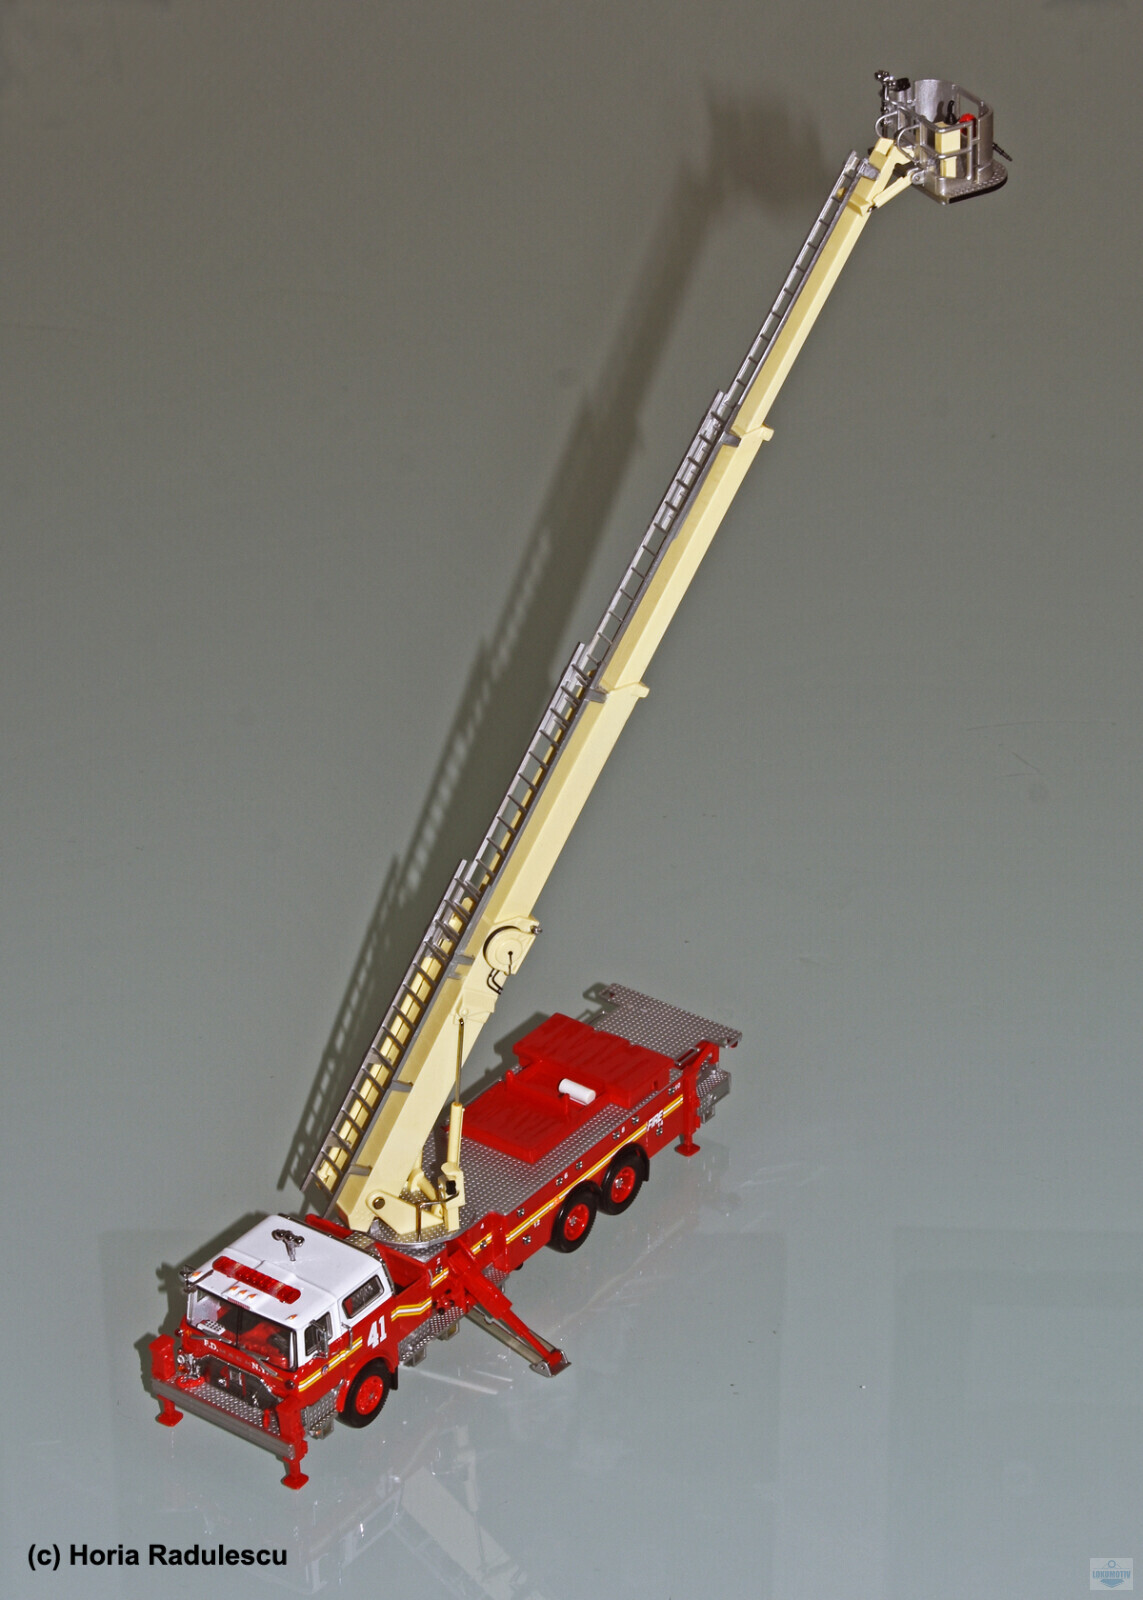 64-FDNY-Mack-CF-Ladder-41-3.jpg